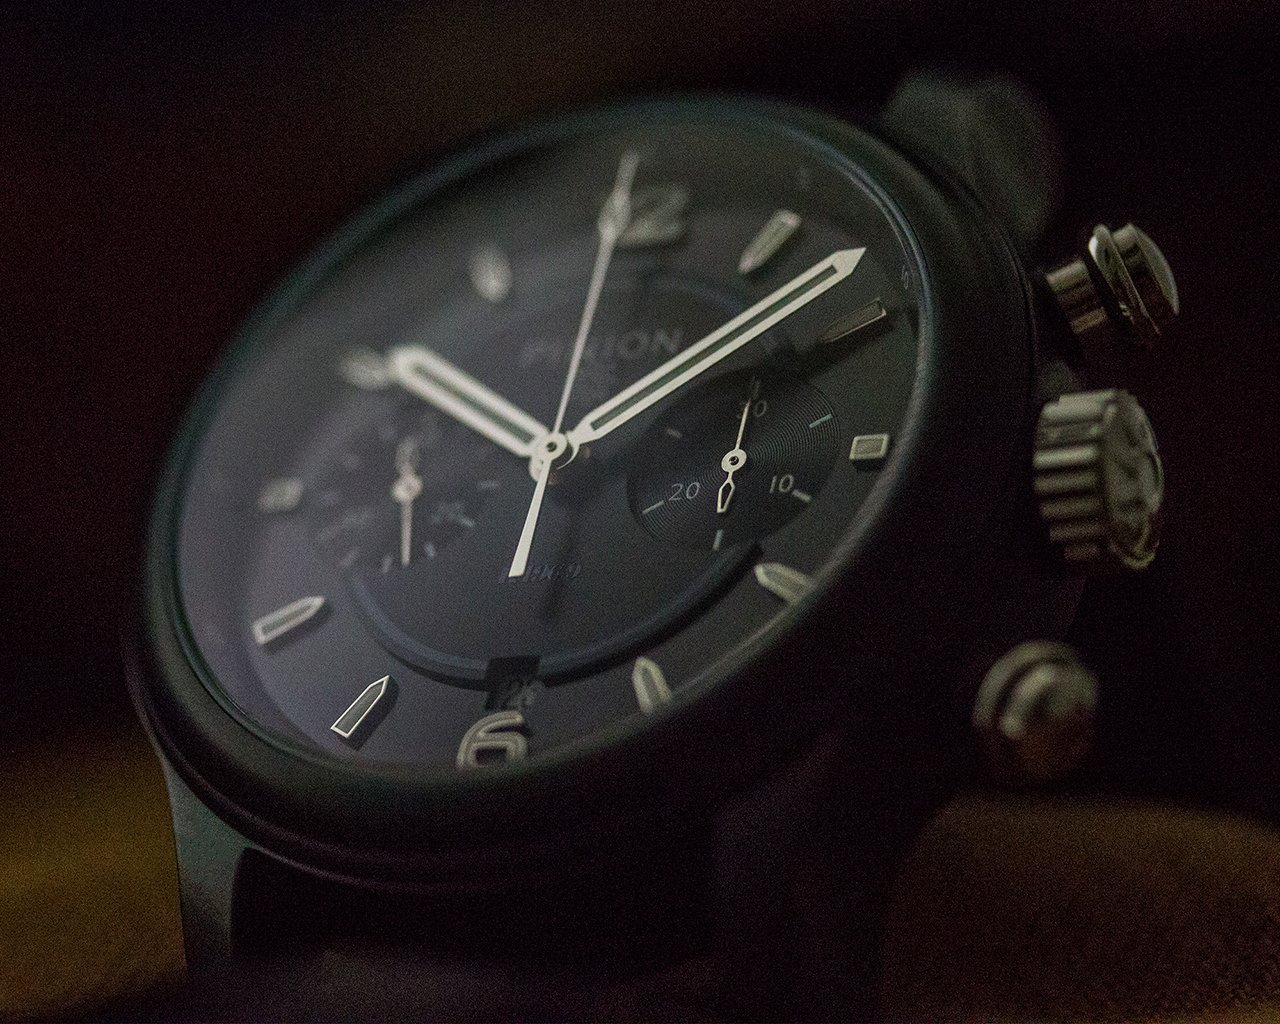 Pinion R-1969 Black watch